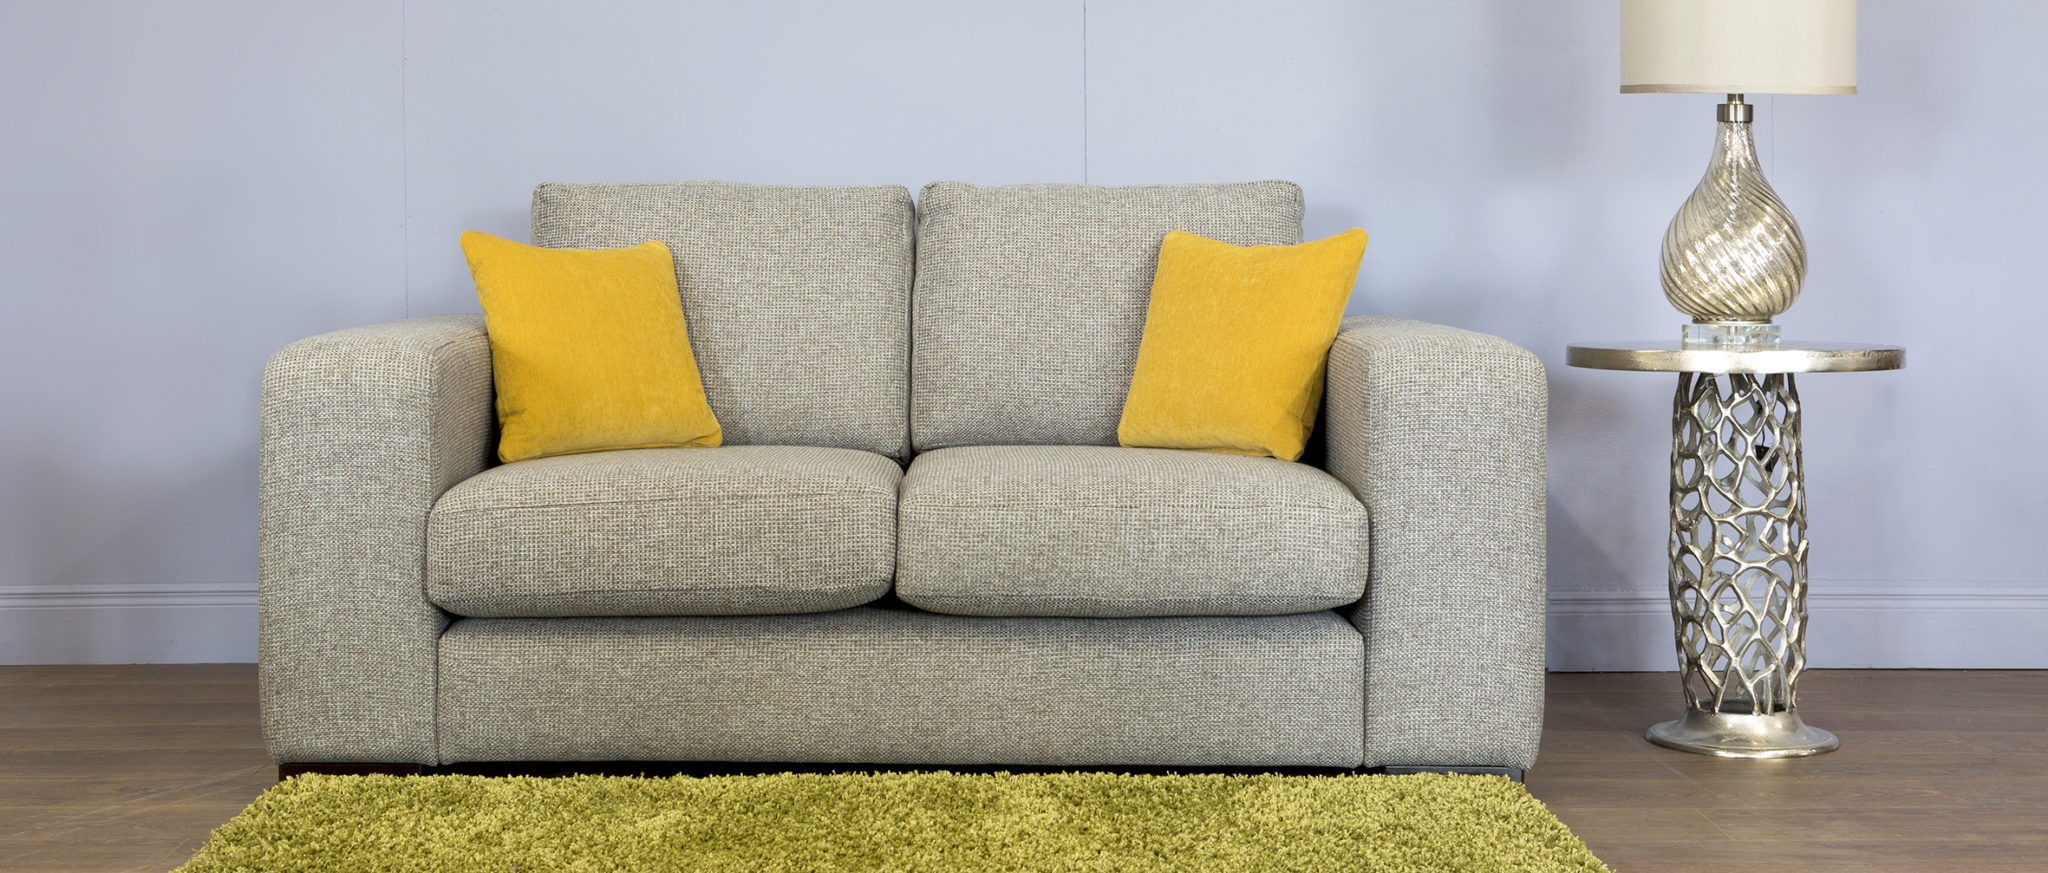 big chunky corner sofas sofa beds next day delivery london colorado and chairs range finline furniture